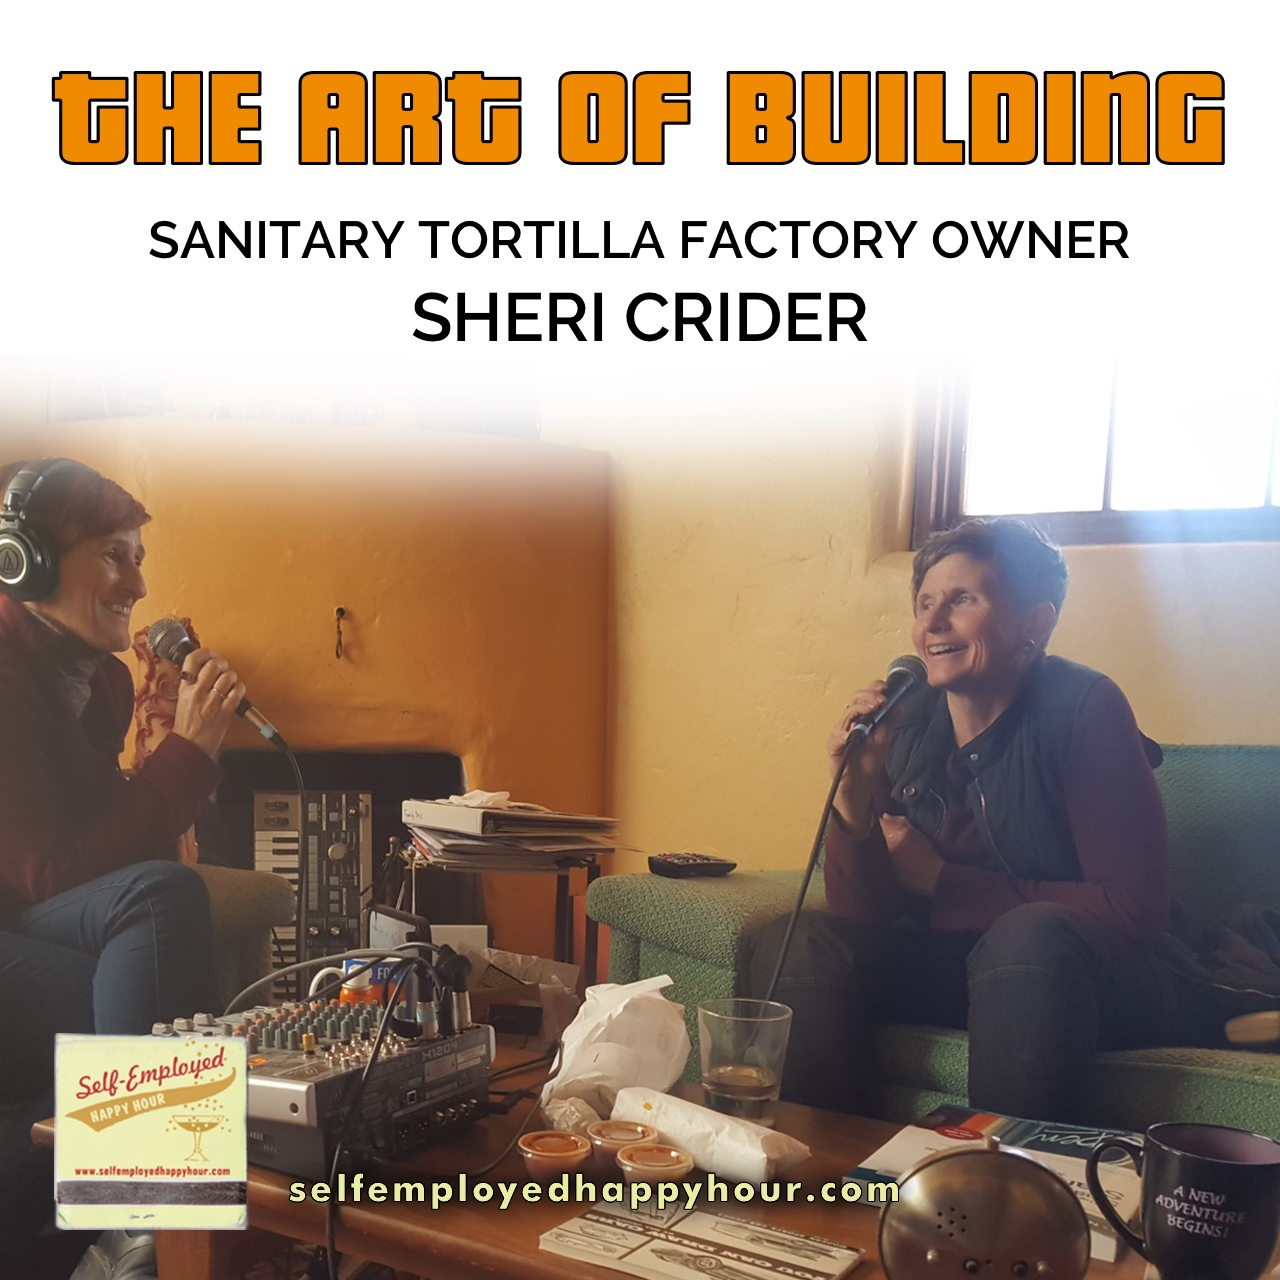 The Art of Building: Sanitary Tortilla Factory Founder Sheri Crider